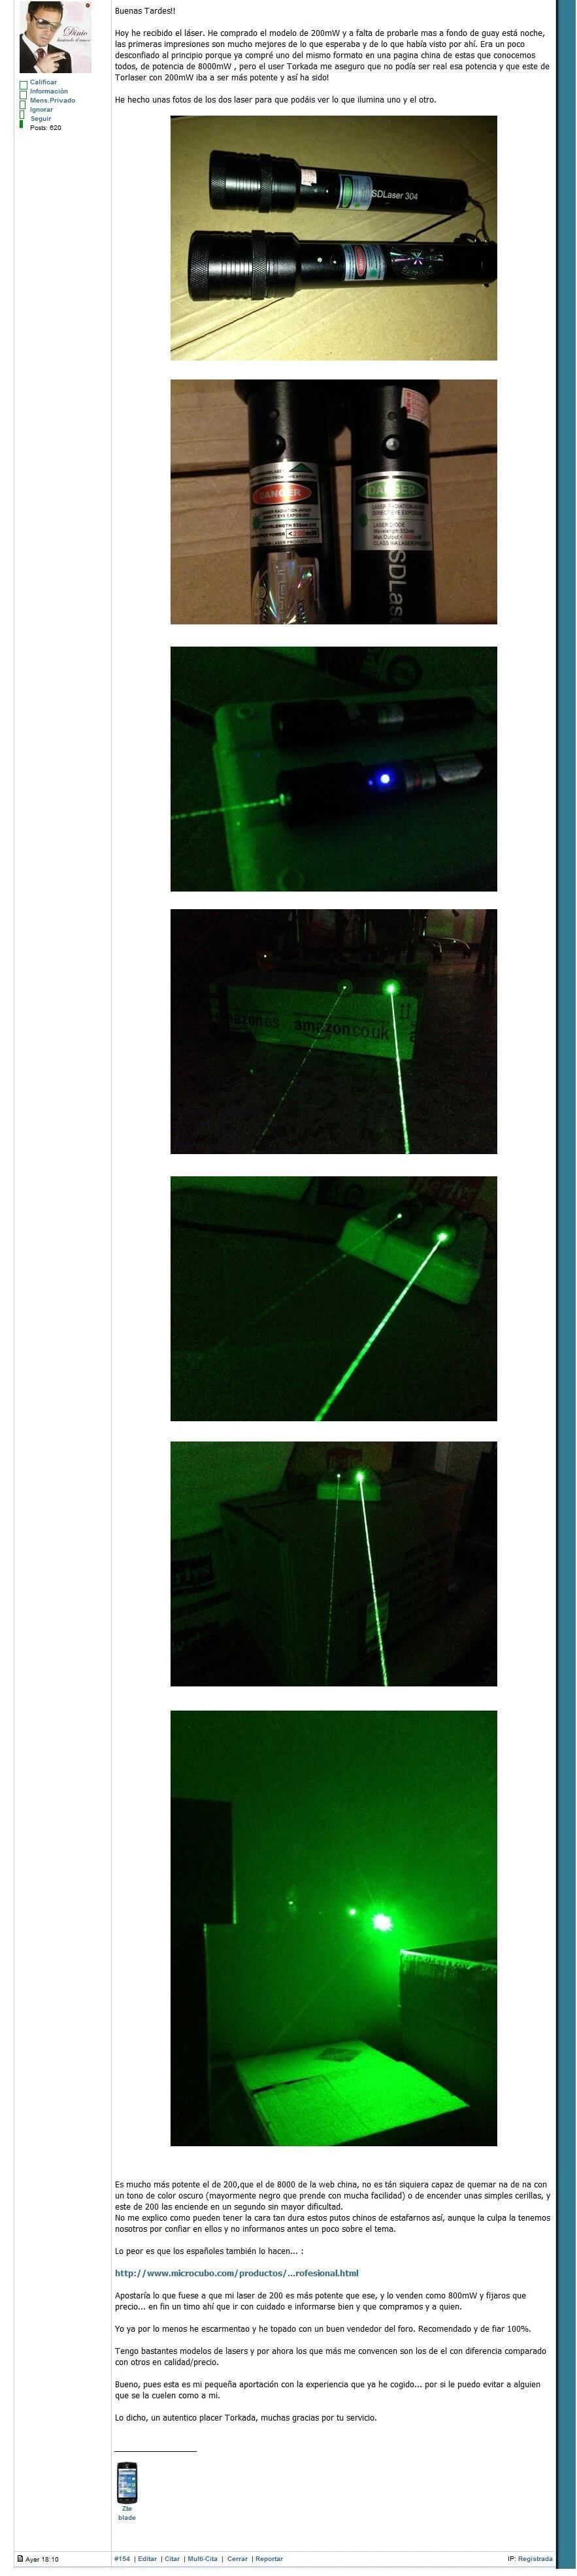 Laser Pointer differences between real power and false power